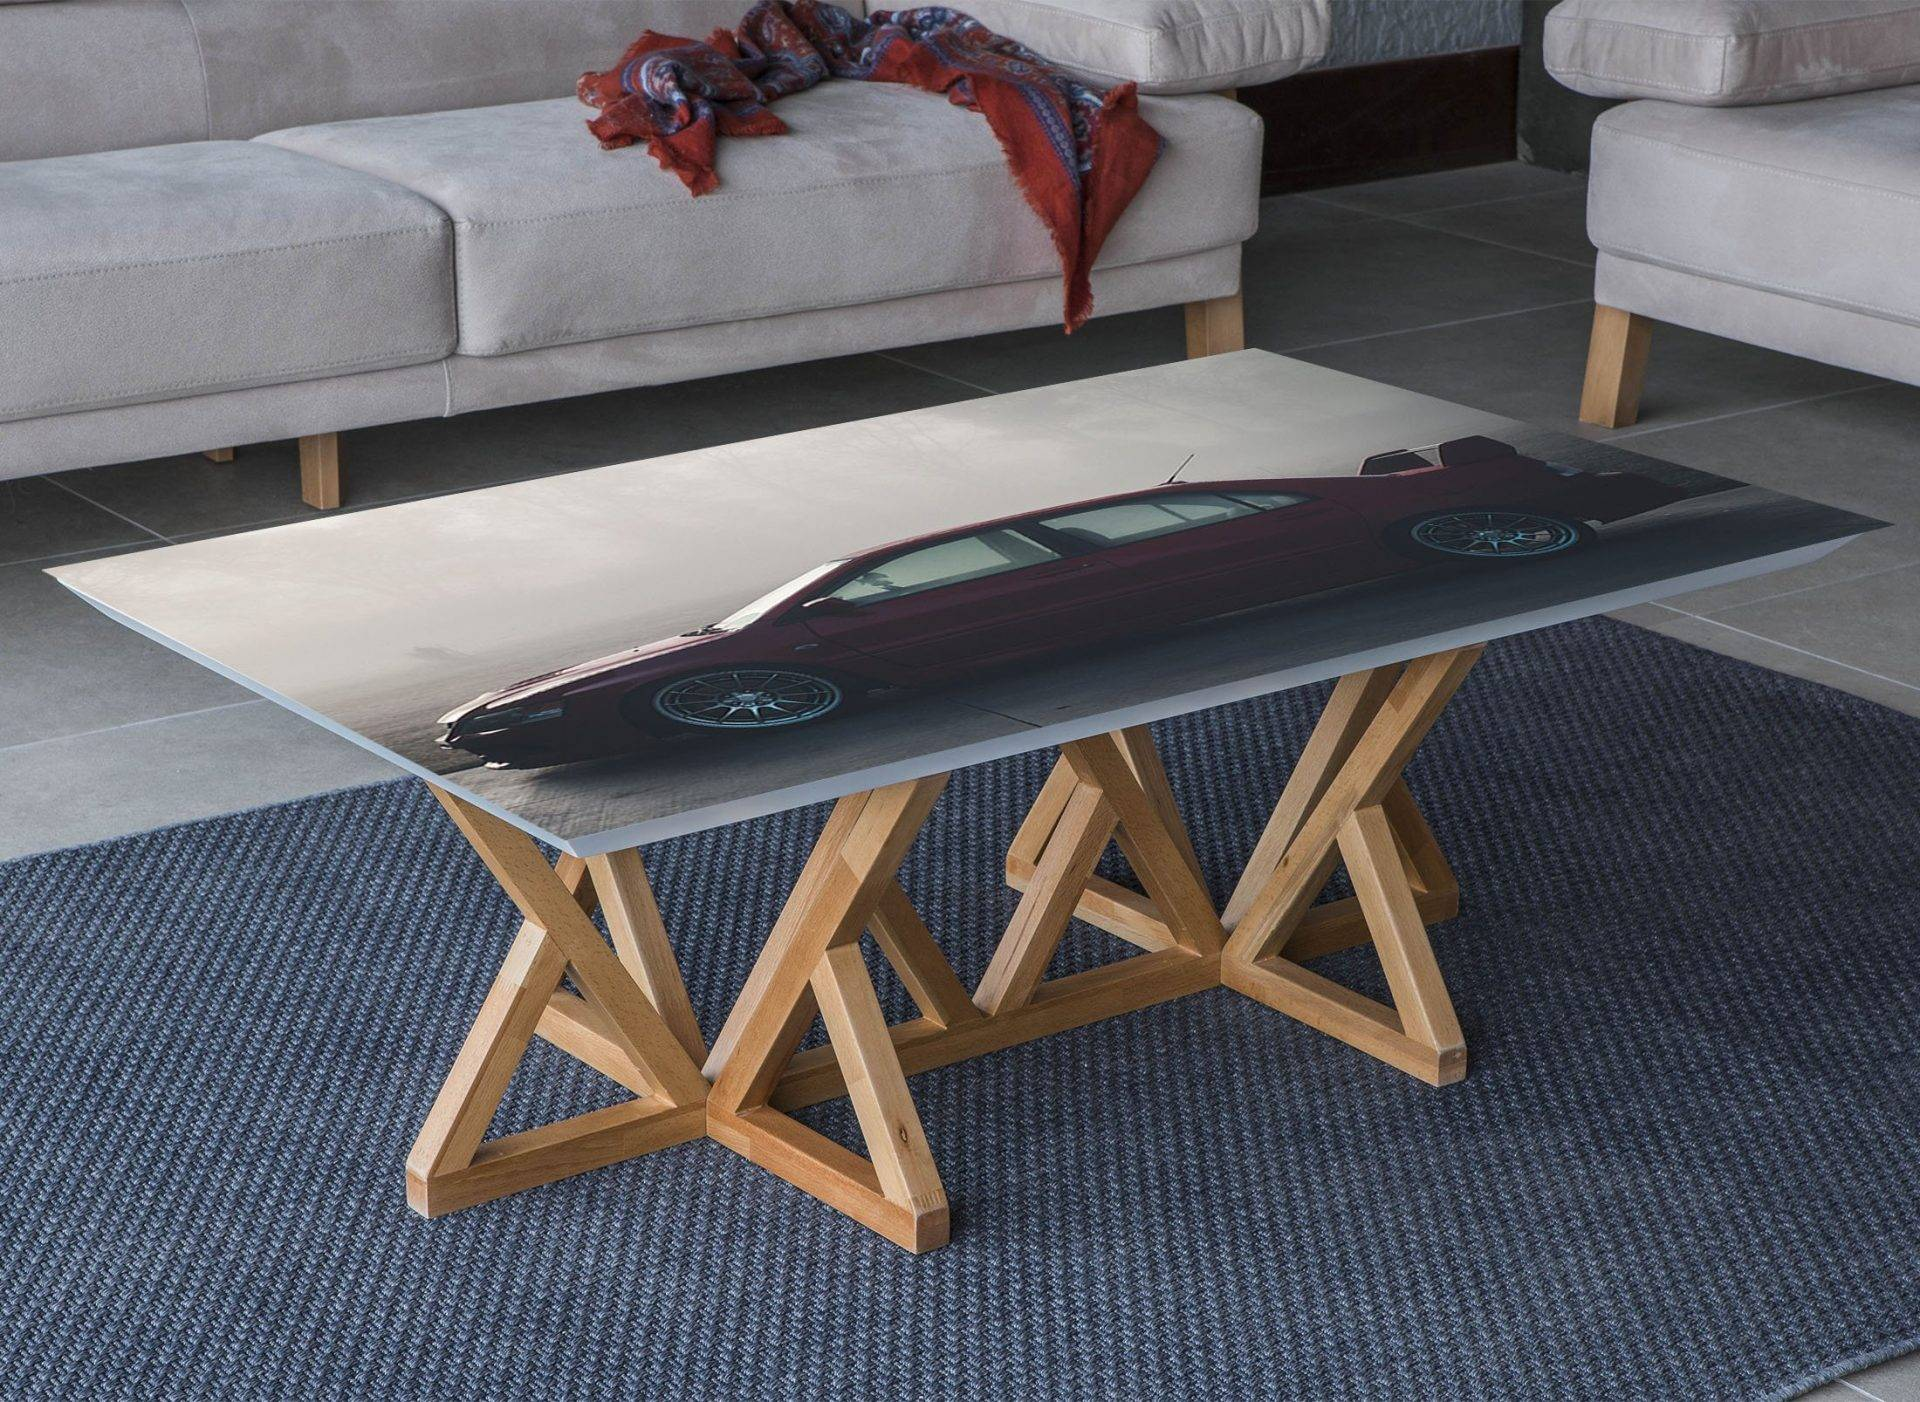 Mitsubishi Lancer Laminated Vinyl Cover Self-Adhesive for Desk and Tables